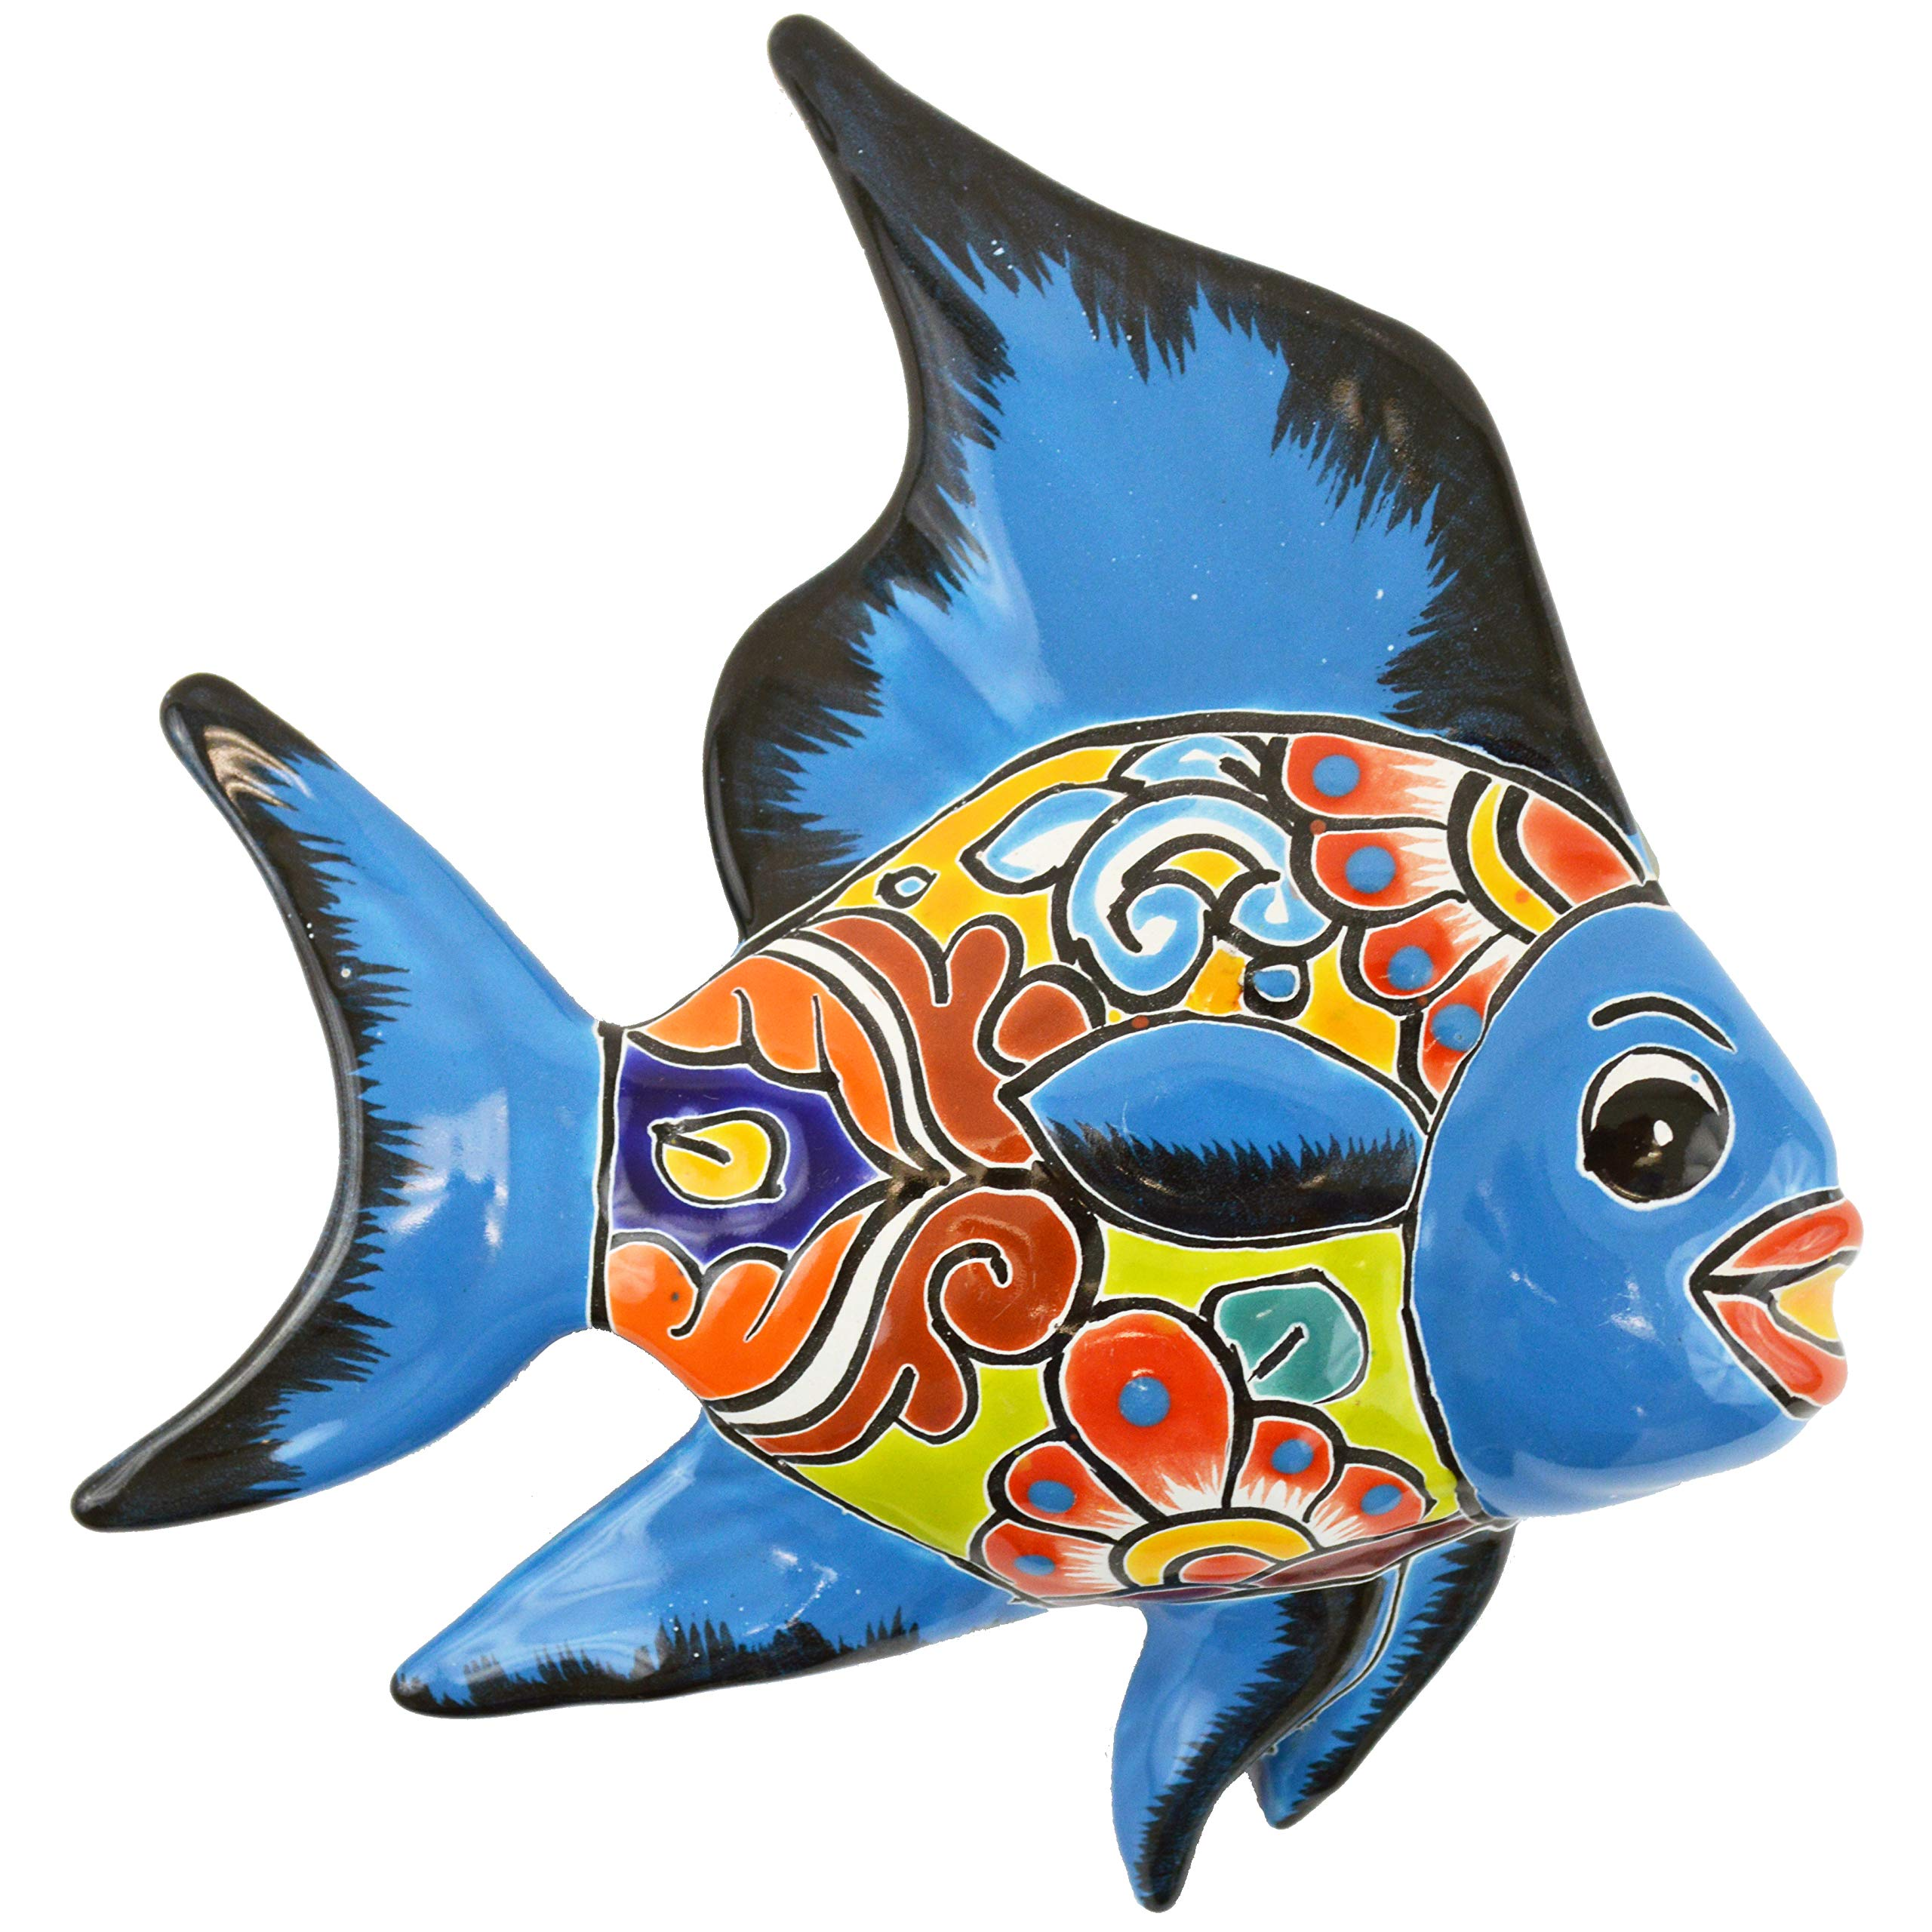 Avera Products Talavera Wall Angel Fish 8x11 Hand Painted Ceramic Garden Decor (Turquoise)